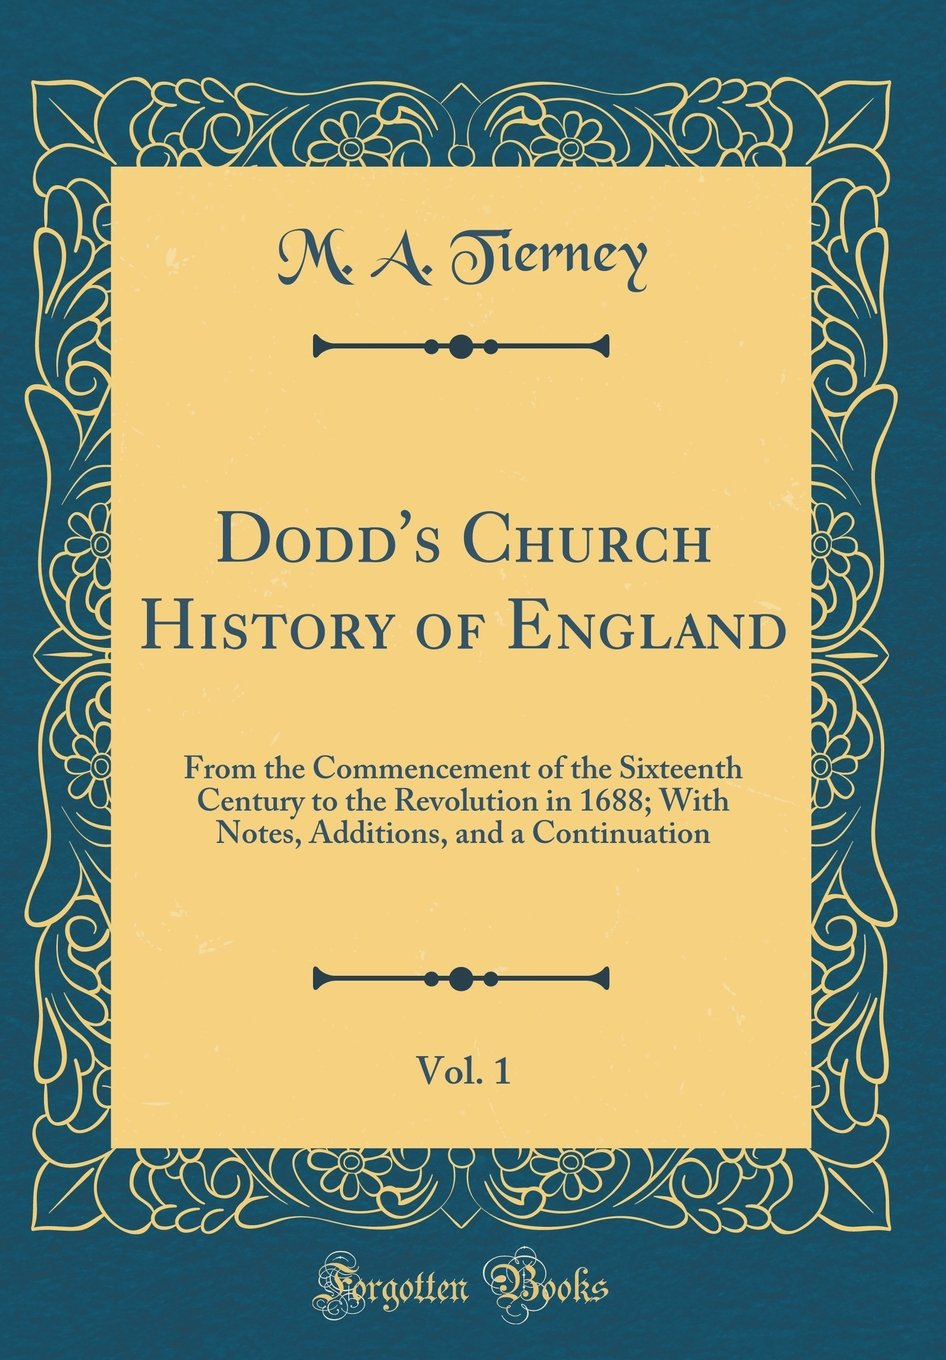 Download Dodd's Church History of England, Vol. 1: From the Commencement of the Sixteenth Century to the Revolution in 1688; With Notes, Additions, and a Continuation (Classic Reprint) PDF